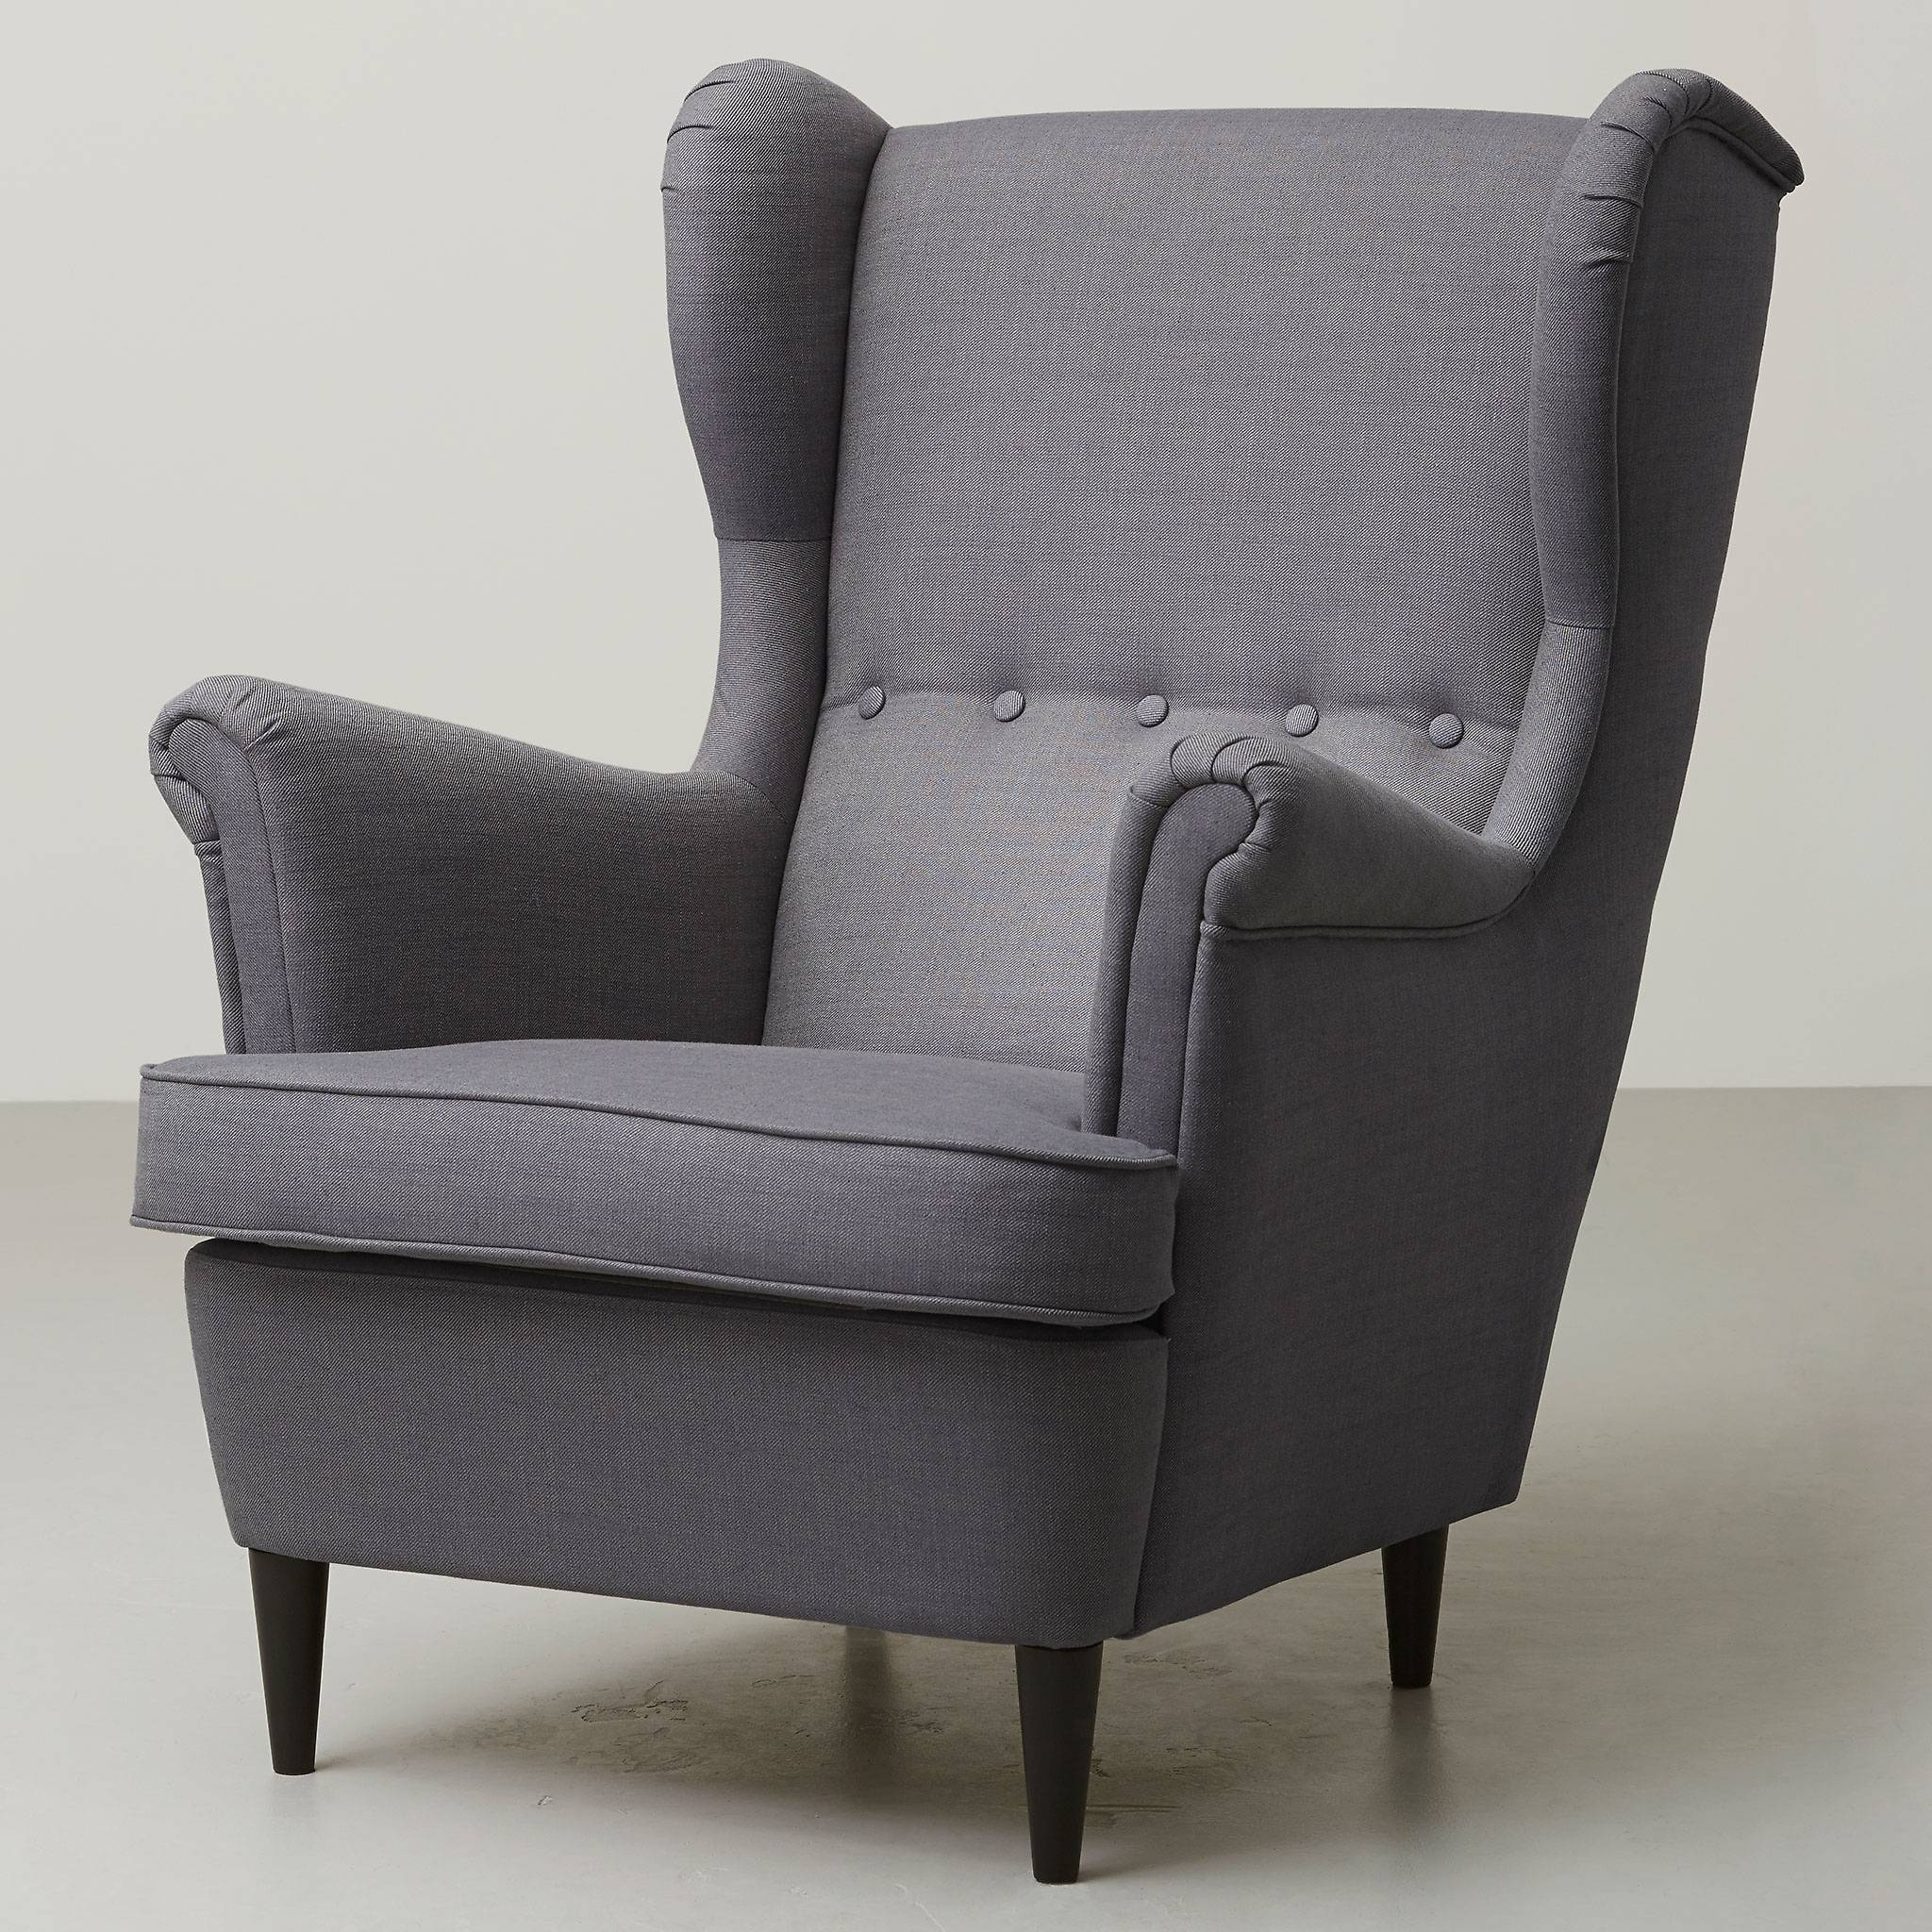 Armchairs & Recliner Chairs | Ikea pertaining to Small Armchairs (Image 5 of 30)